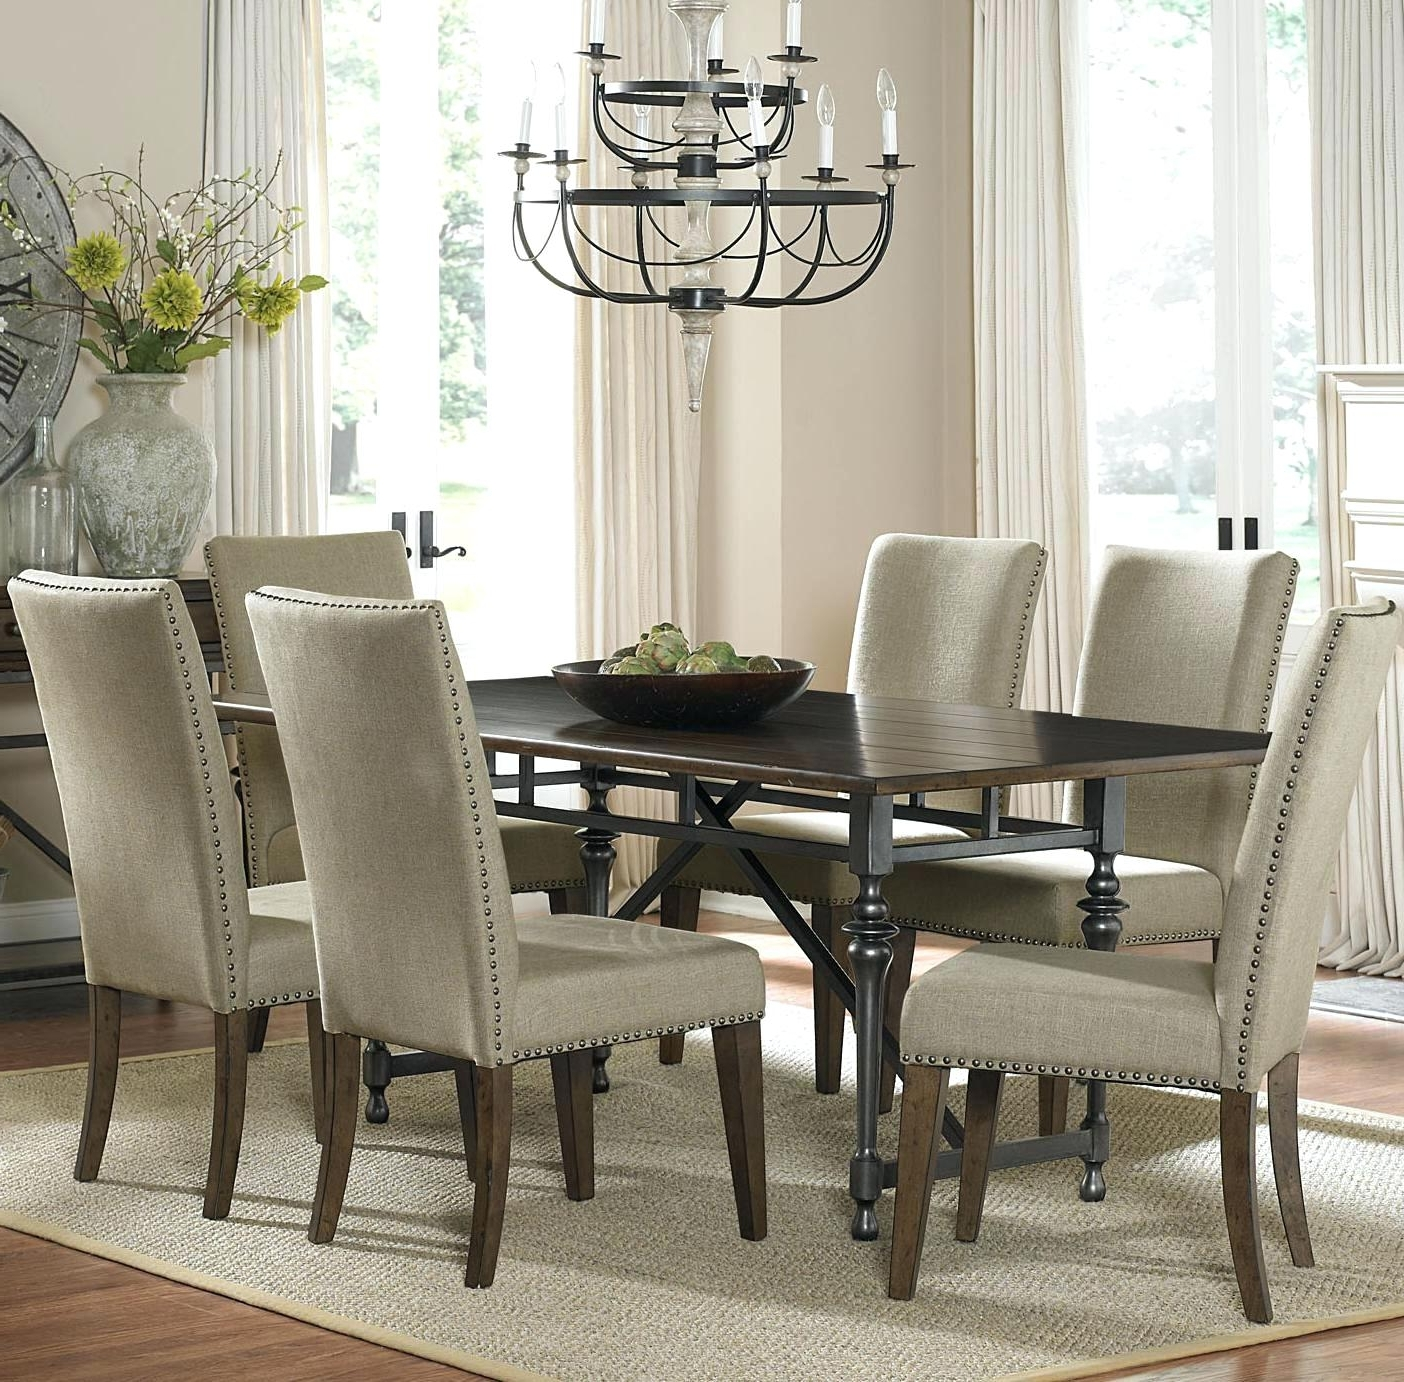 Preferred Dining Room Table With Upholstered Chairs – Dining Room Designs Within Jaxon 7 Piece Rectangle Dining Sets With Upholstered Chairs (Gallery 19 of 25)